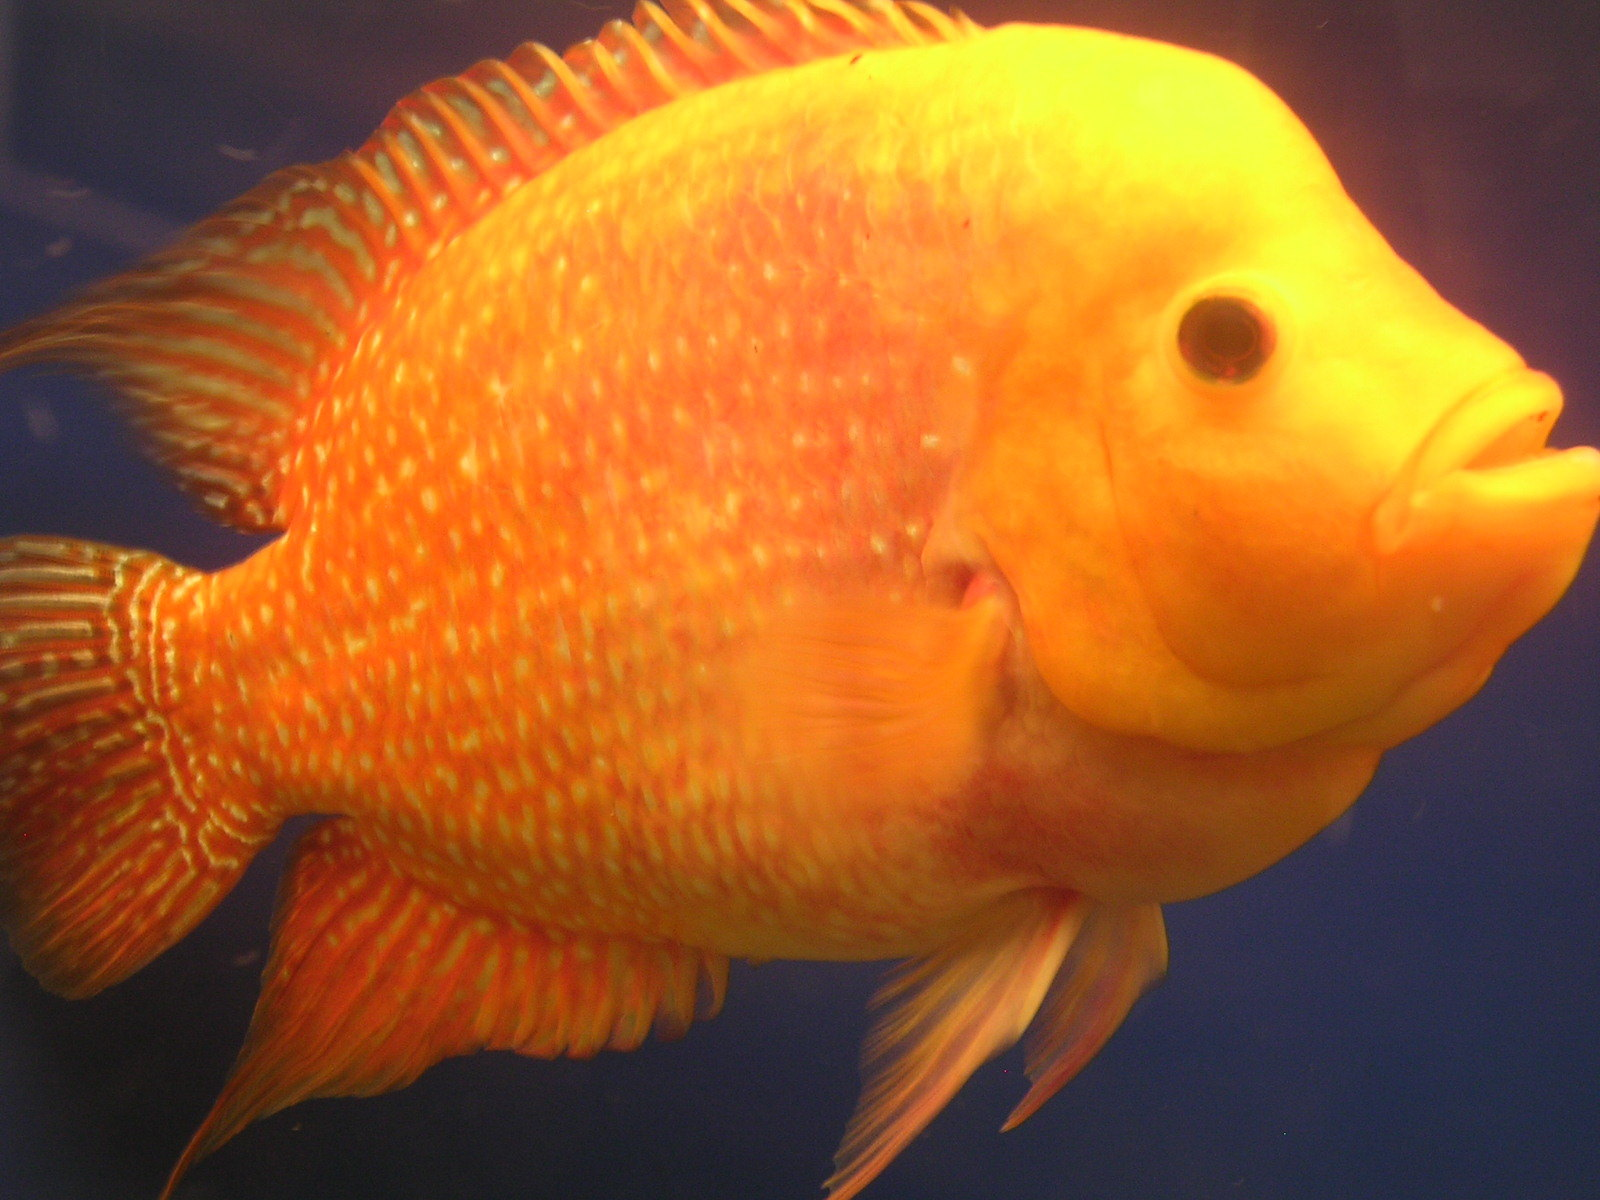 golden emperor flowerhorn | by caretagunz !!